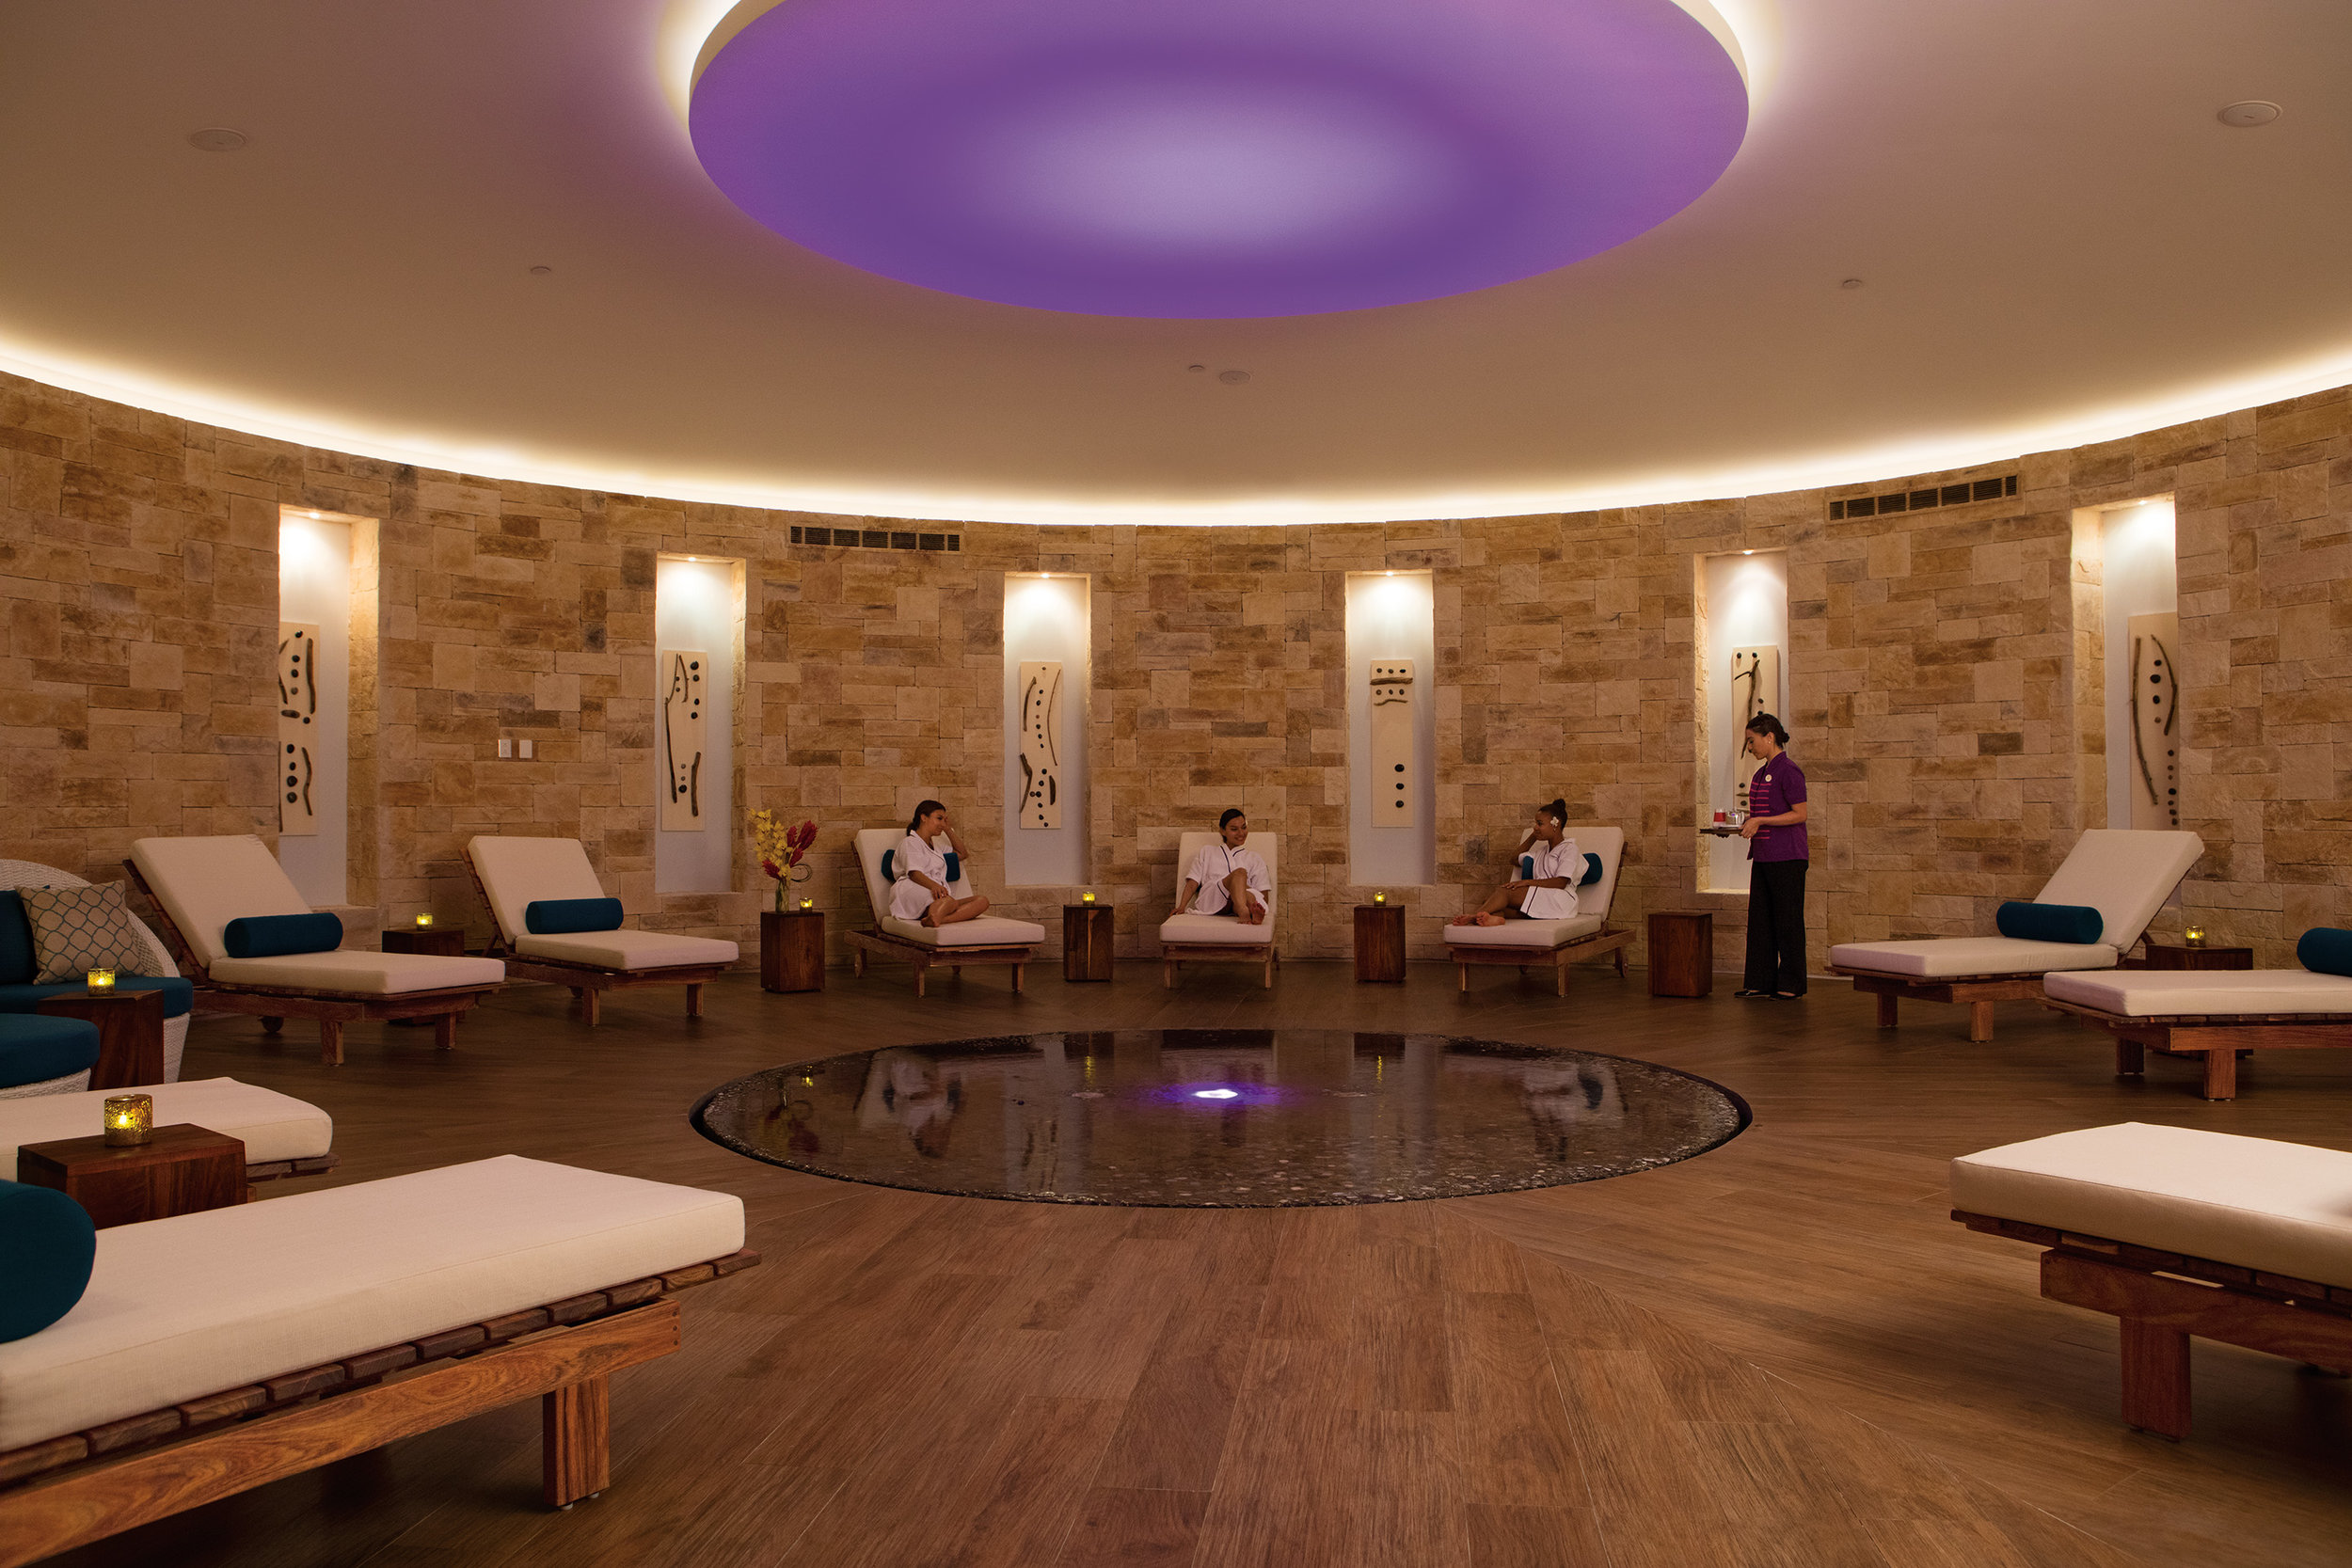 BRERC_SPA_RelaxationArea2_1.jpg